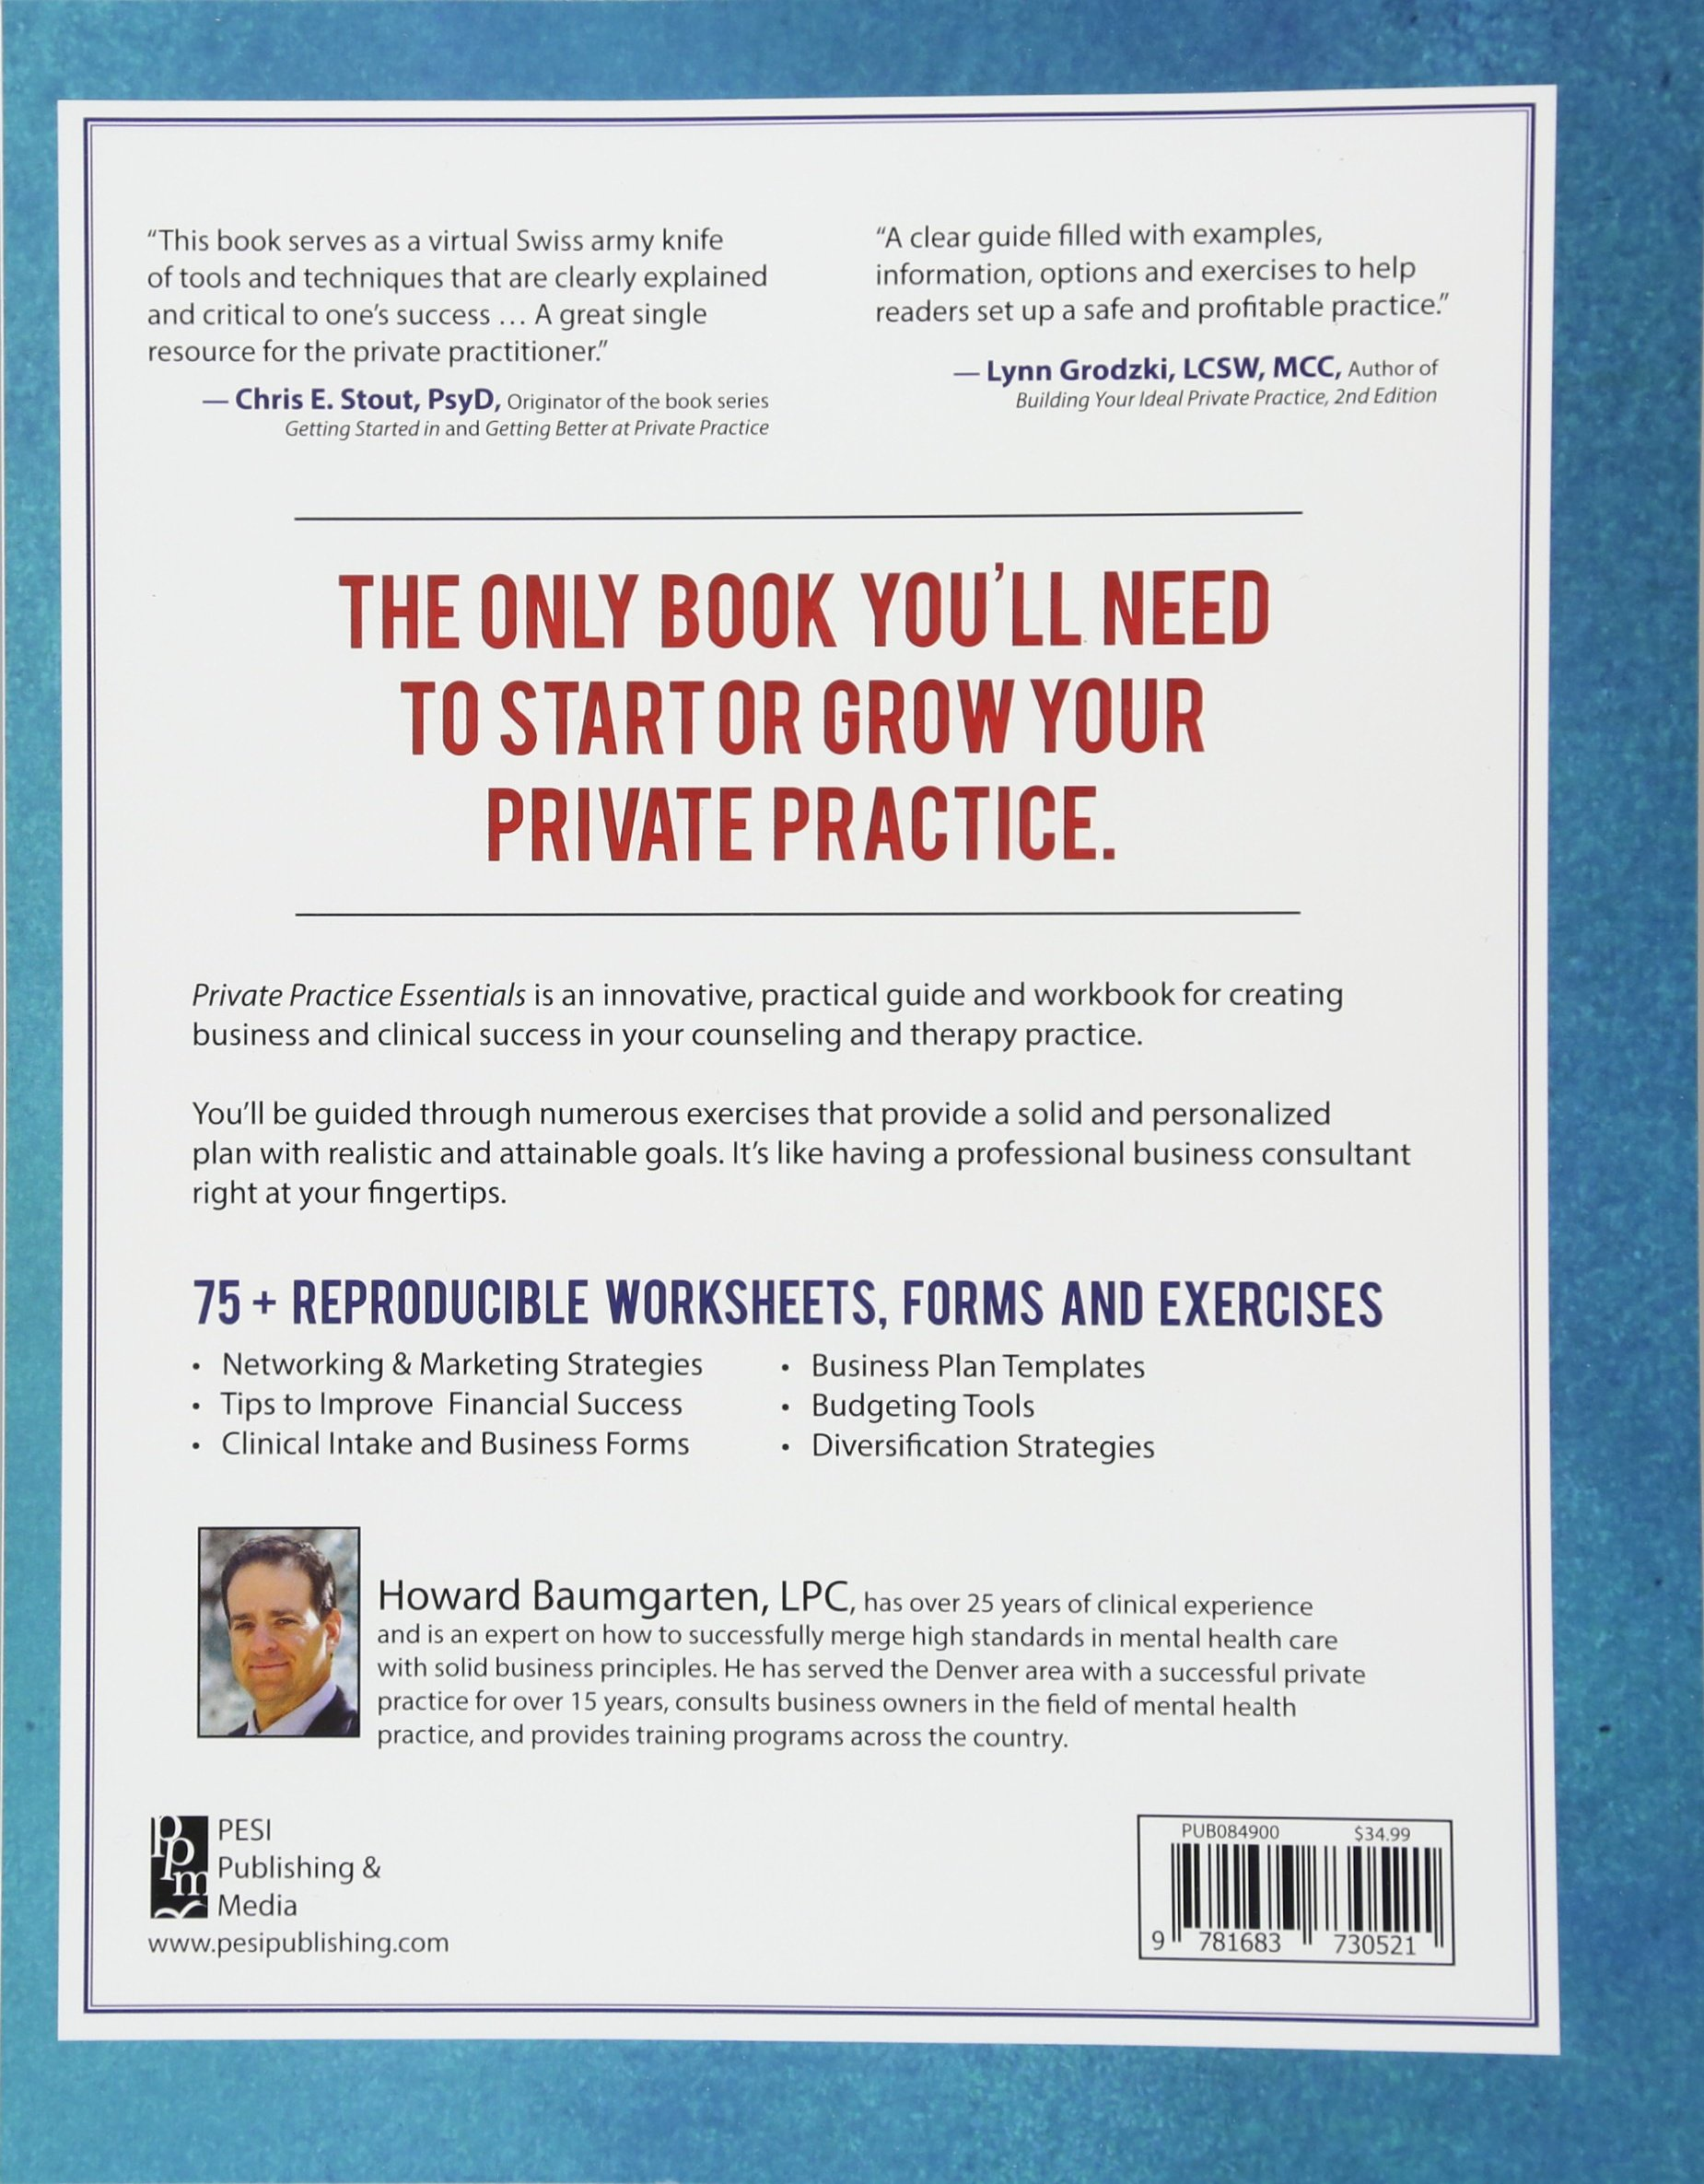 Private practice essentials business tools for mental health private practice essentials business tools for mental health professionals howard baumgarten 9781683730521 amazon books flashek Images